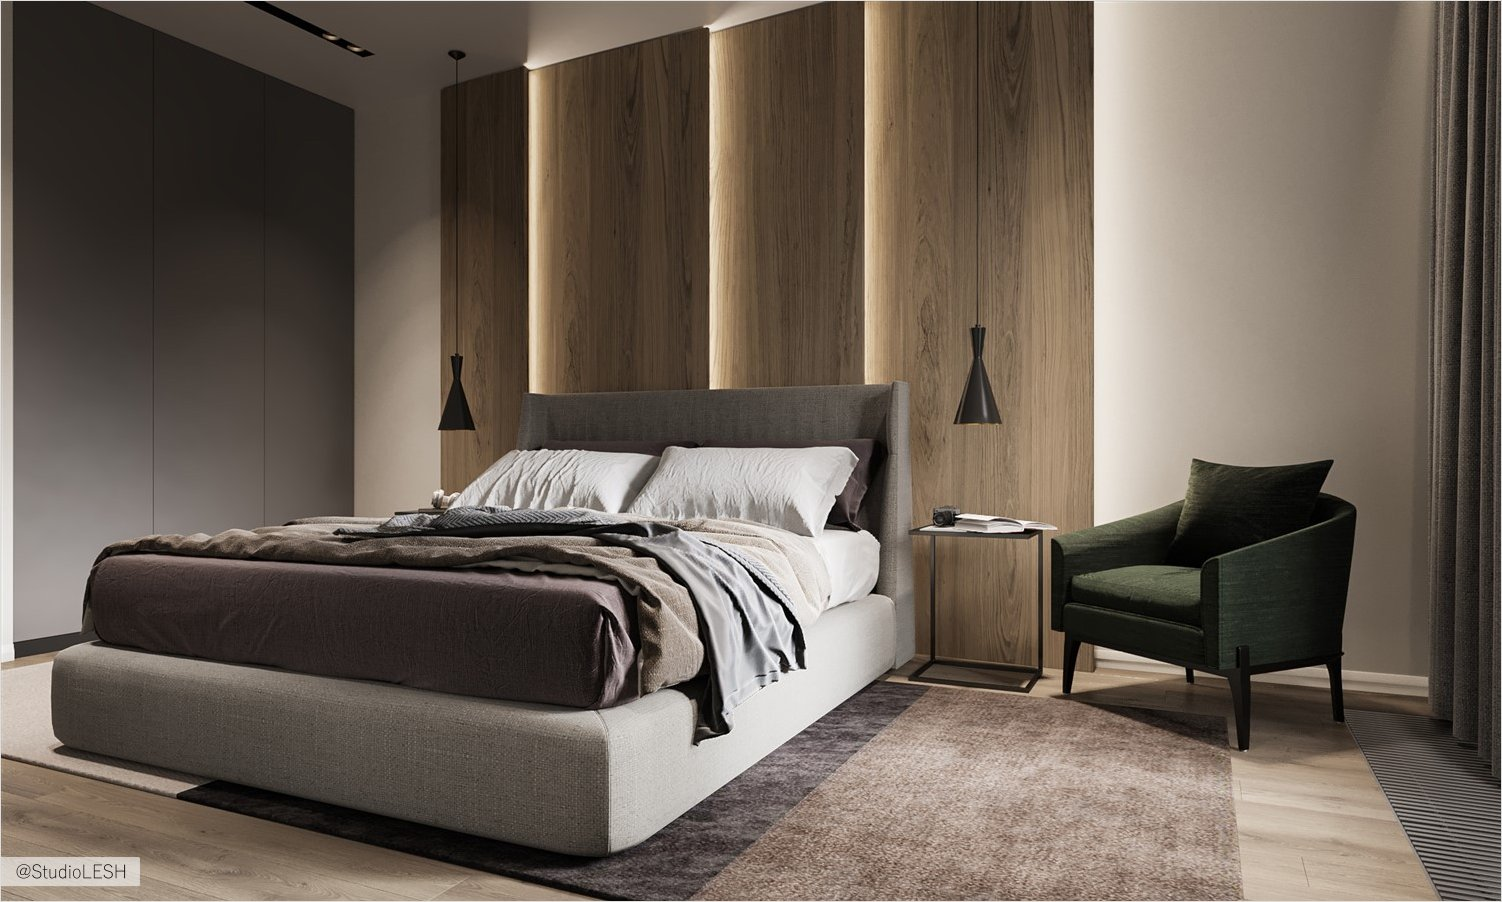 Large bed in the bedroom with a creative headboard